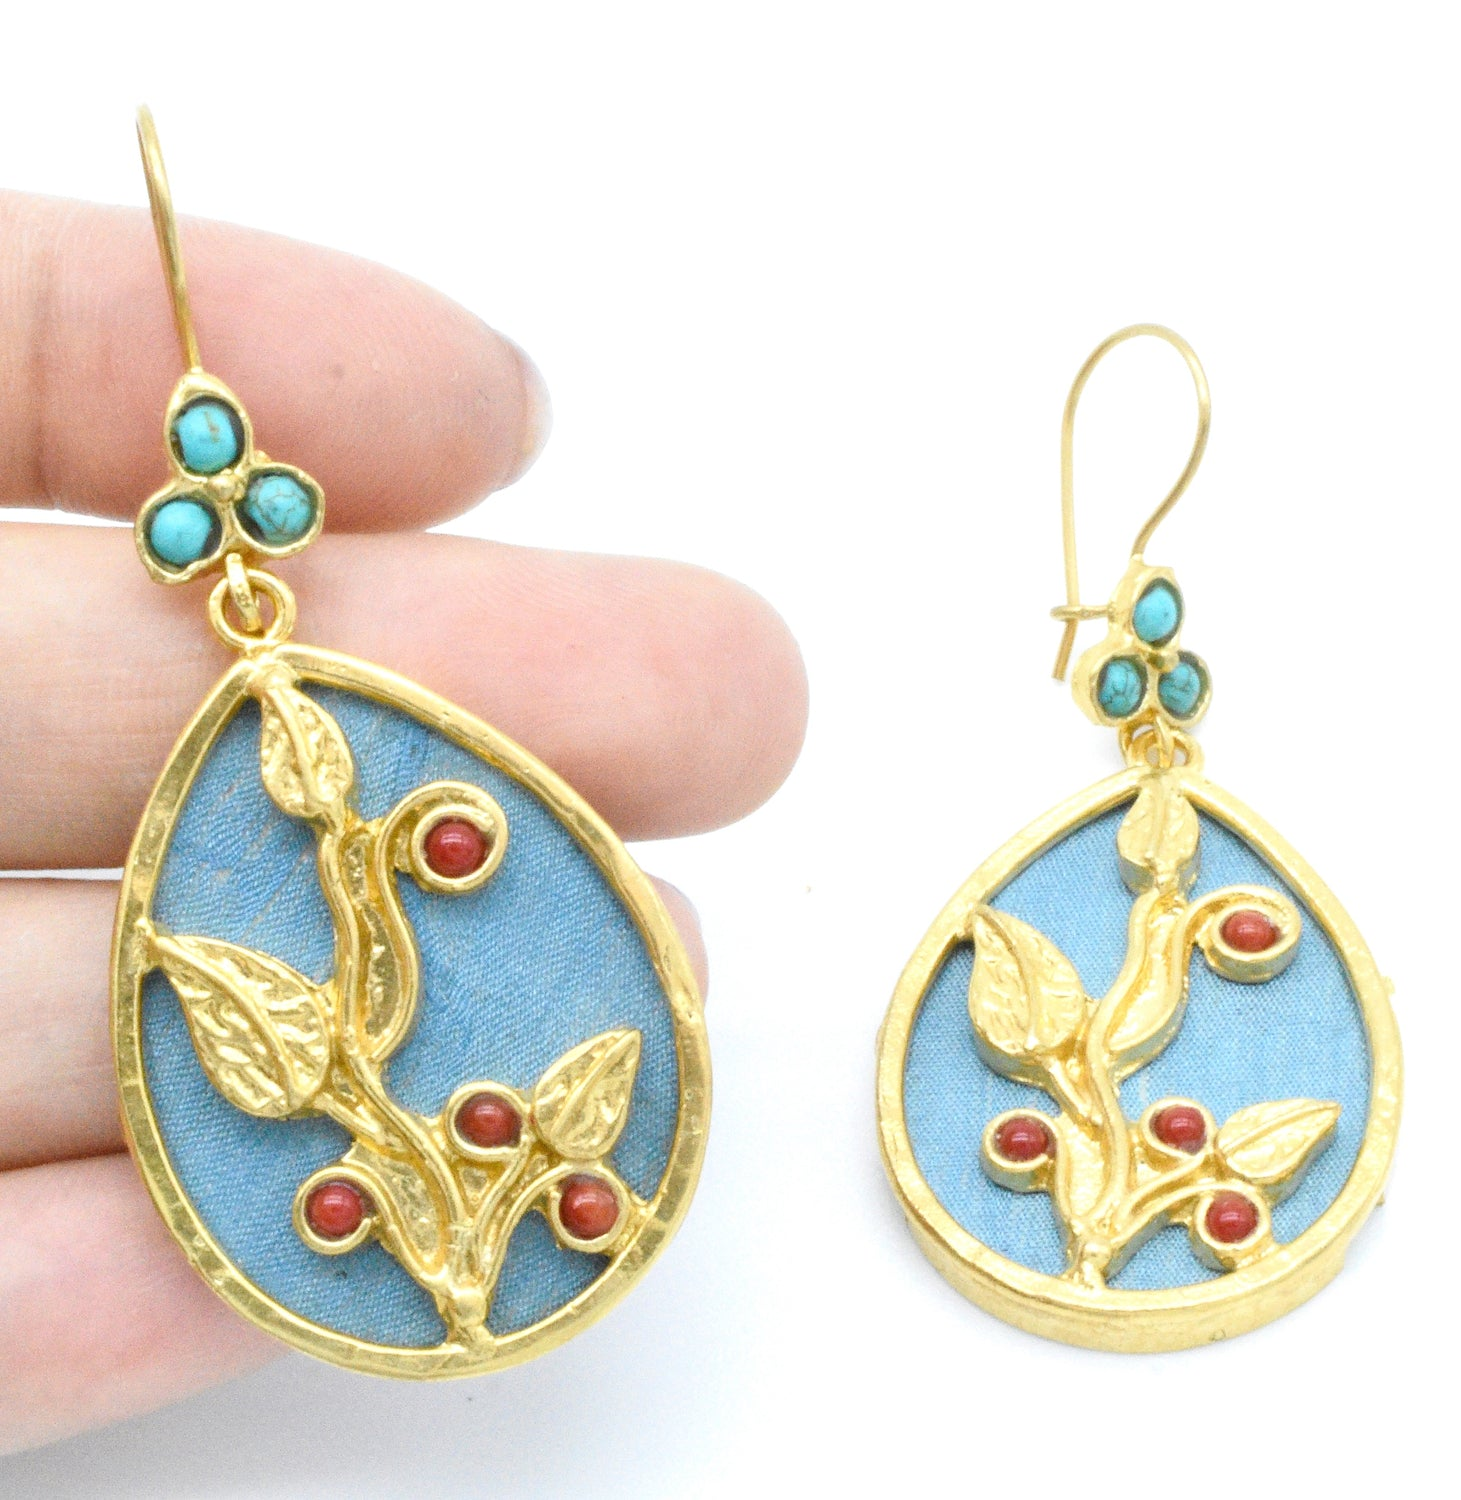 Aylas Red coral & Turquoise earrings - Gold plated semi-precious gemstone - Handmade in Ottoman style